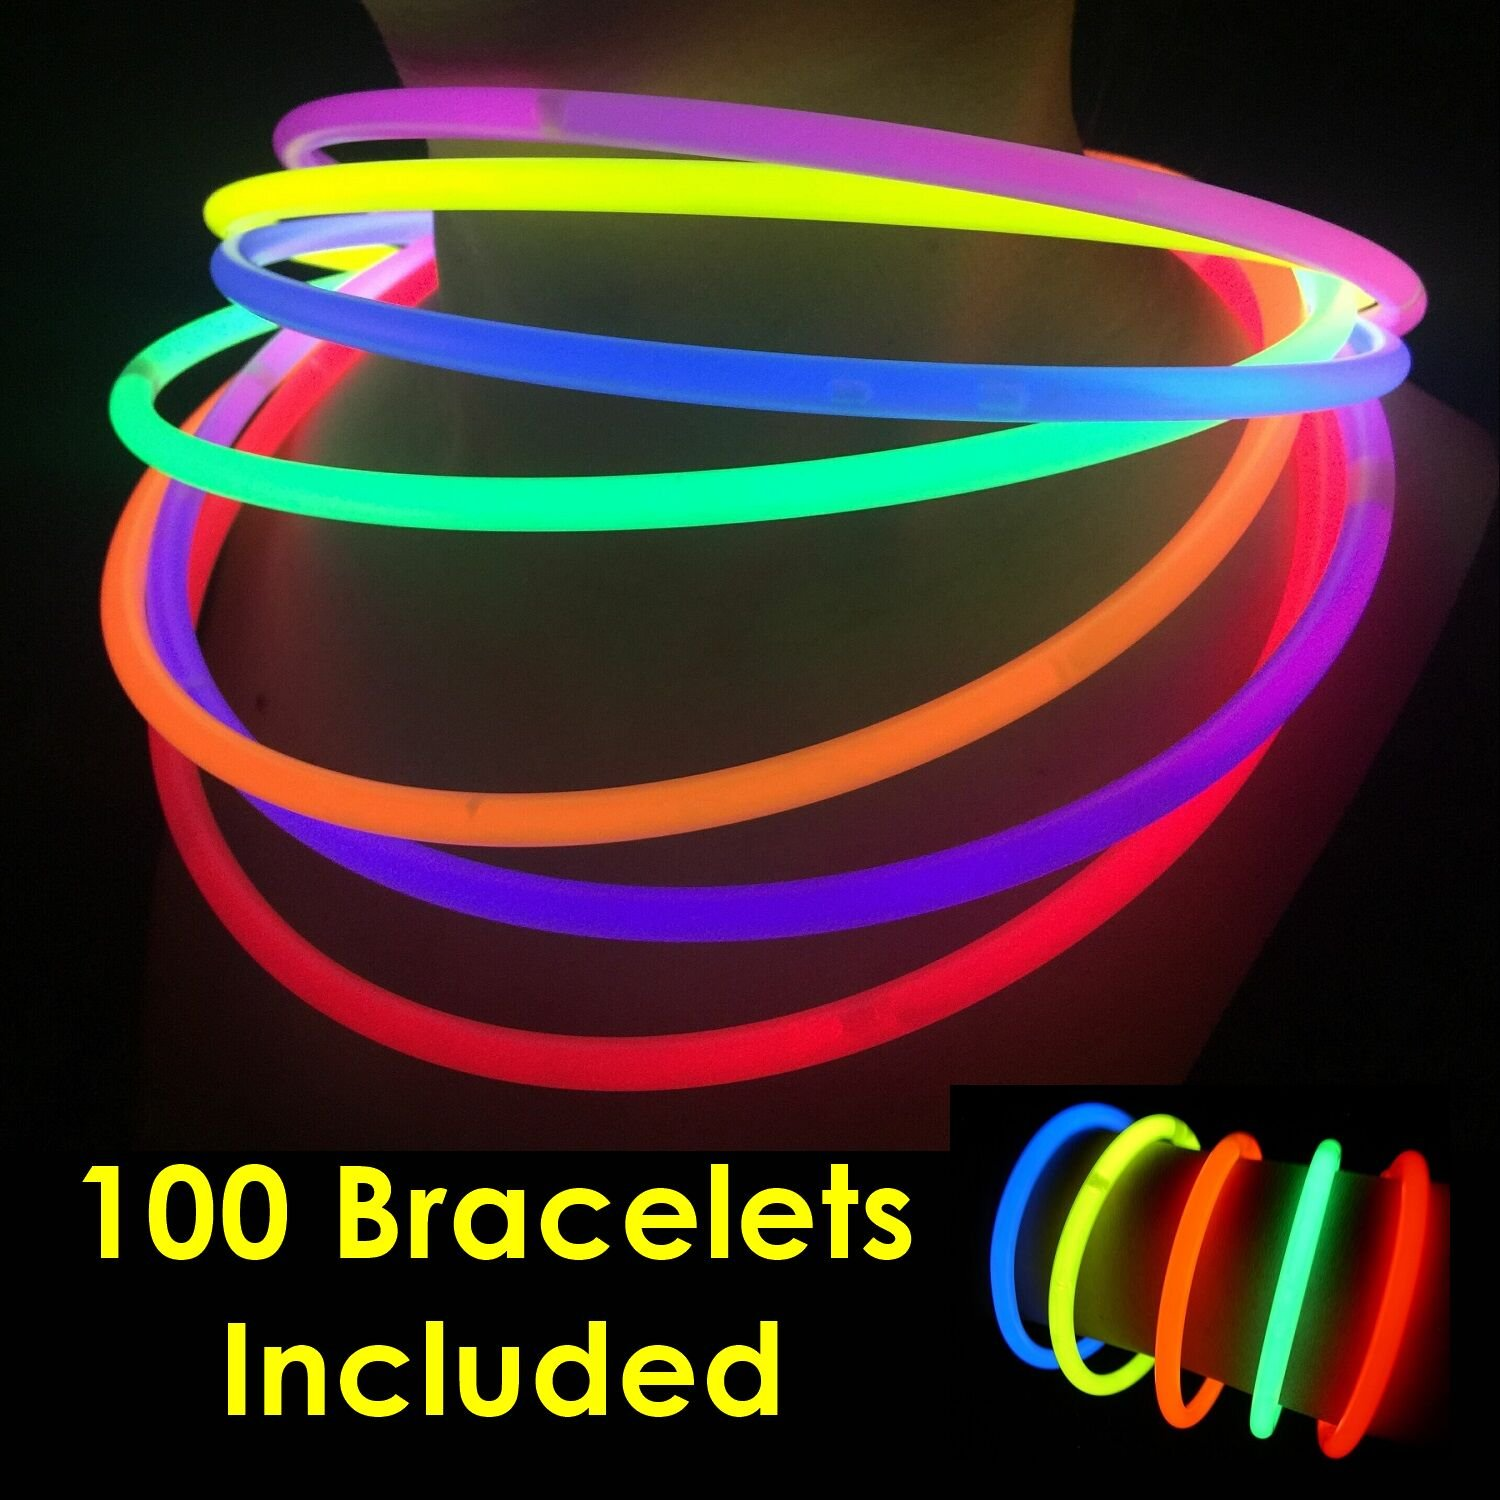 Glow Sticks Bulk Wholesale Necklaces, 100 22'' Glow Stick Necklaces+100 FREE Glow Bracelets! Bright Colors Glow 8-12 Hr, Connector Pre-attached(handy), Glow-in-the-dark Party Supplies, GlowWithUs Brand